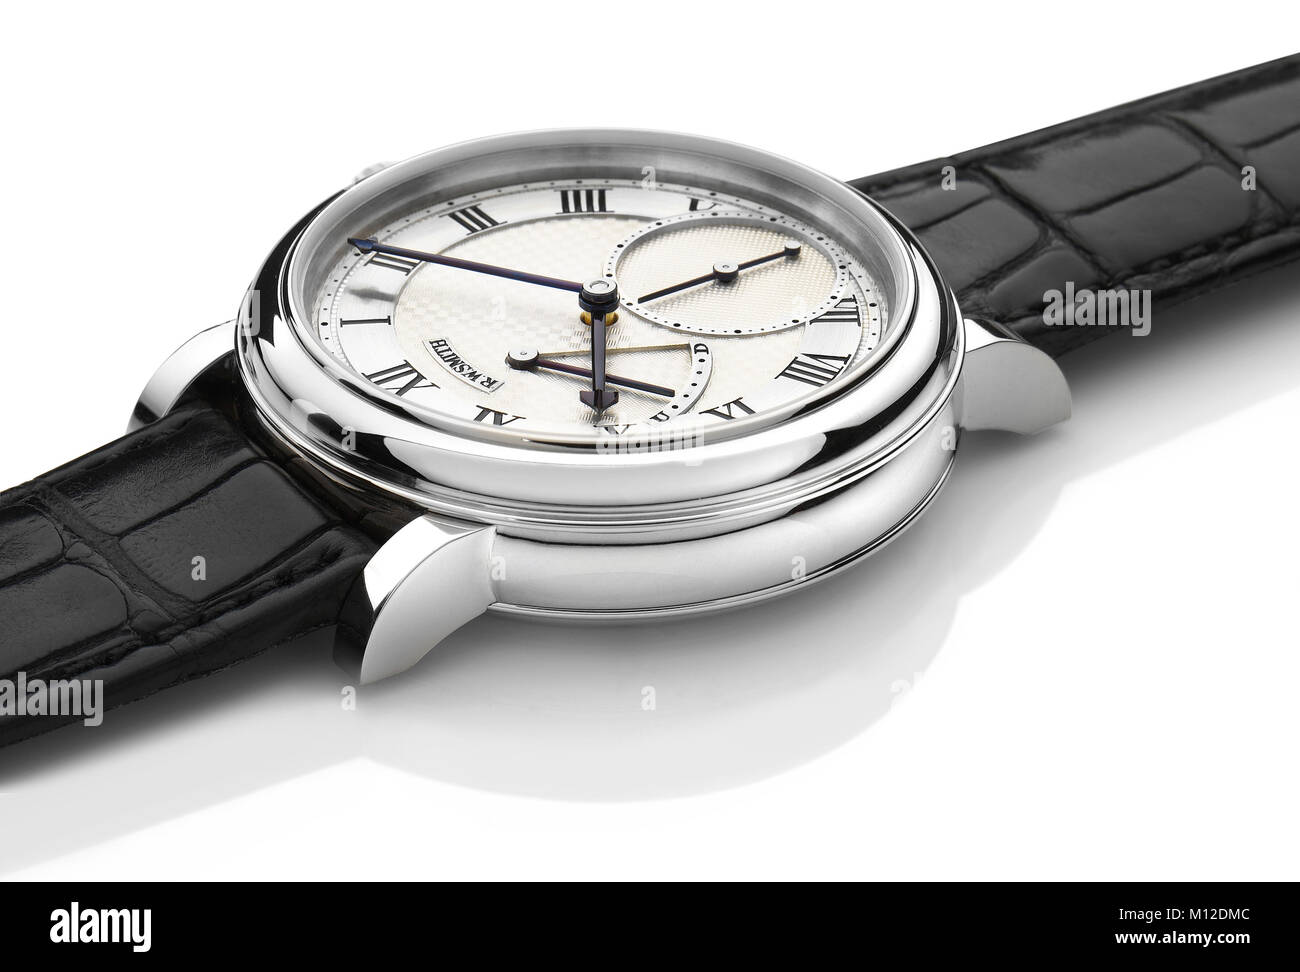 Roger Smith watch in platinum - Stock Image